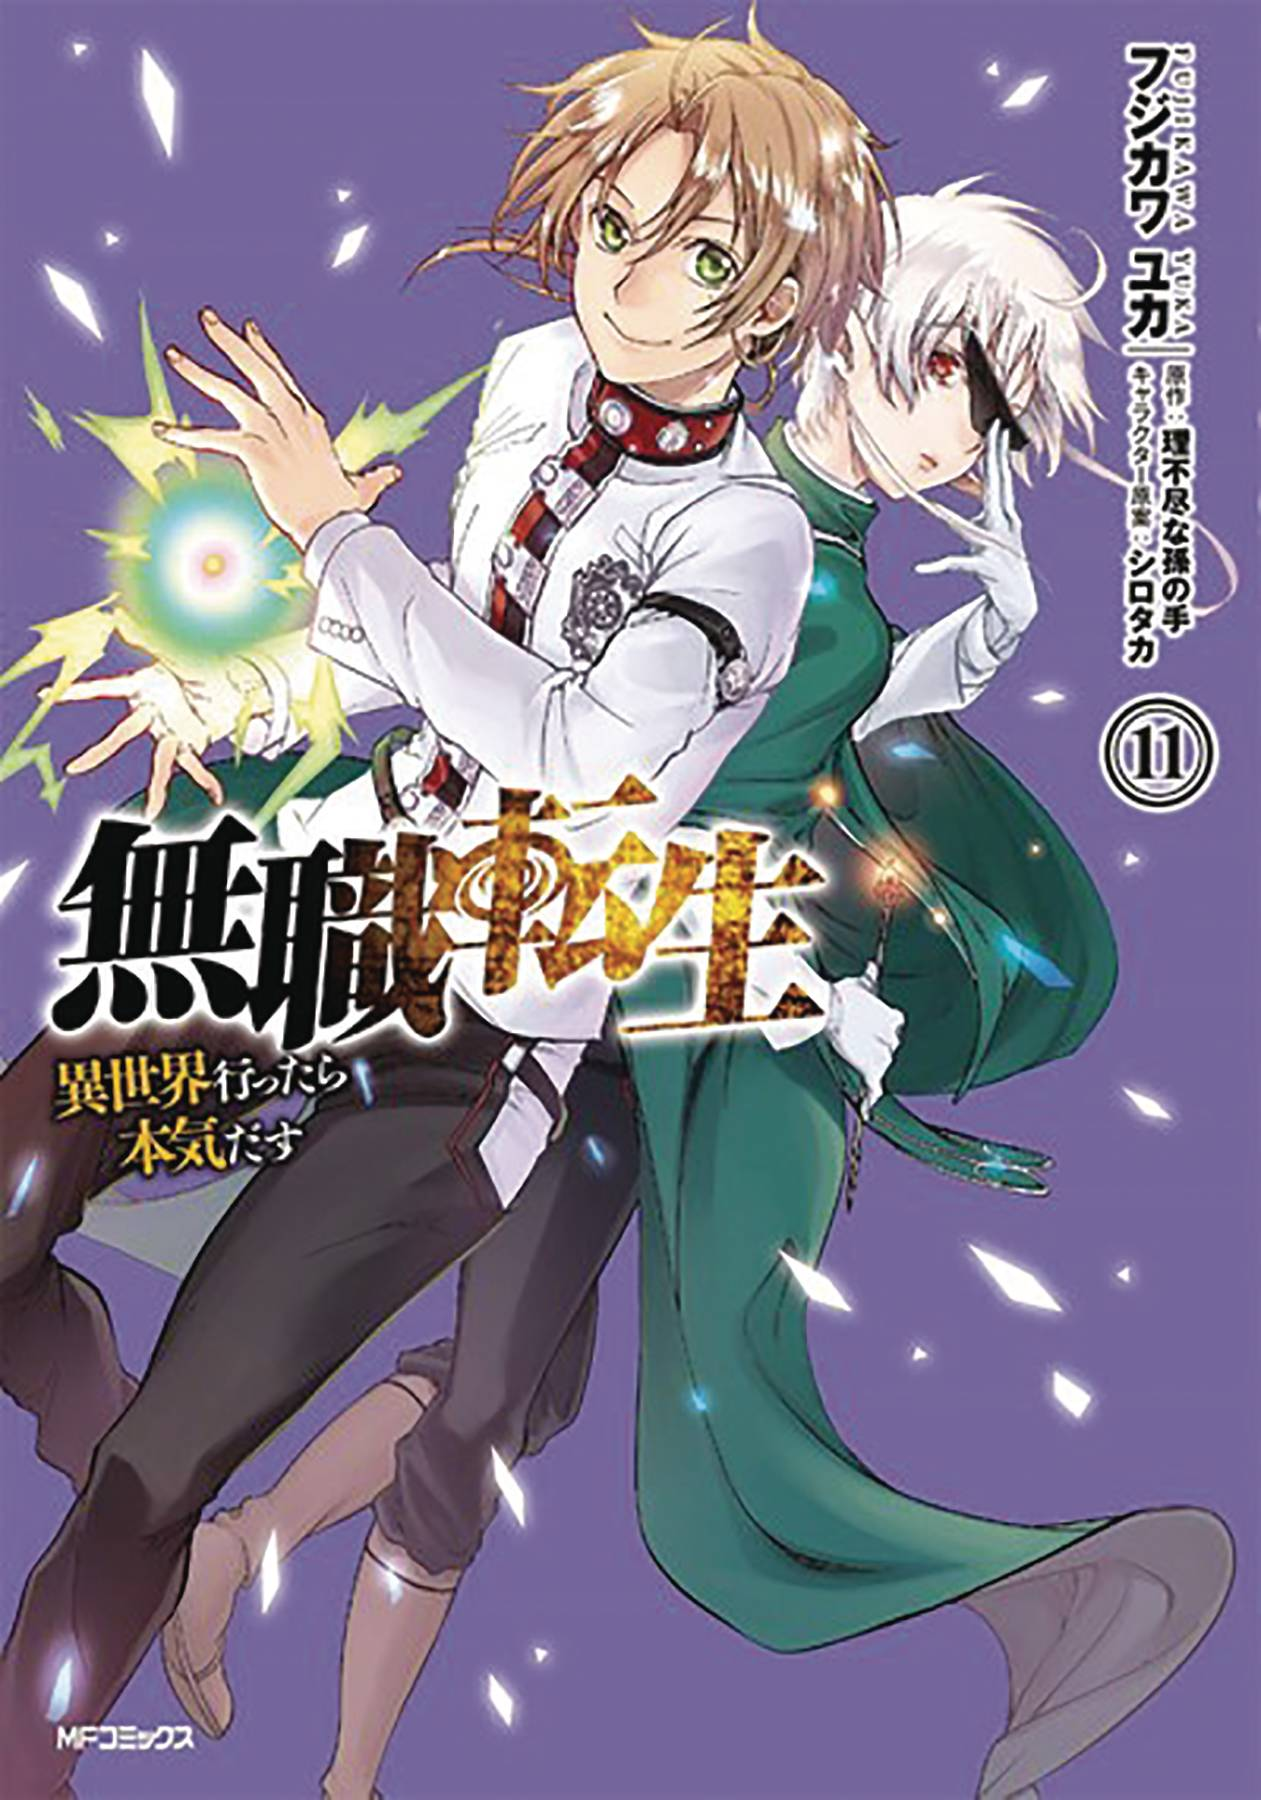 MUSHOKU TENSEI JOBLESS REINCARNATION LIGHT NOVEL SC 07